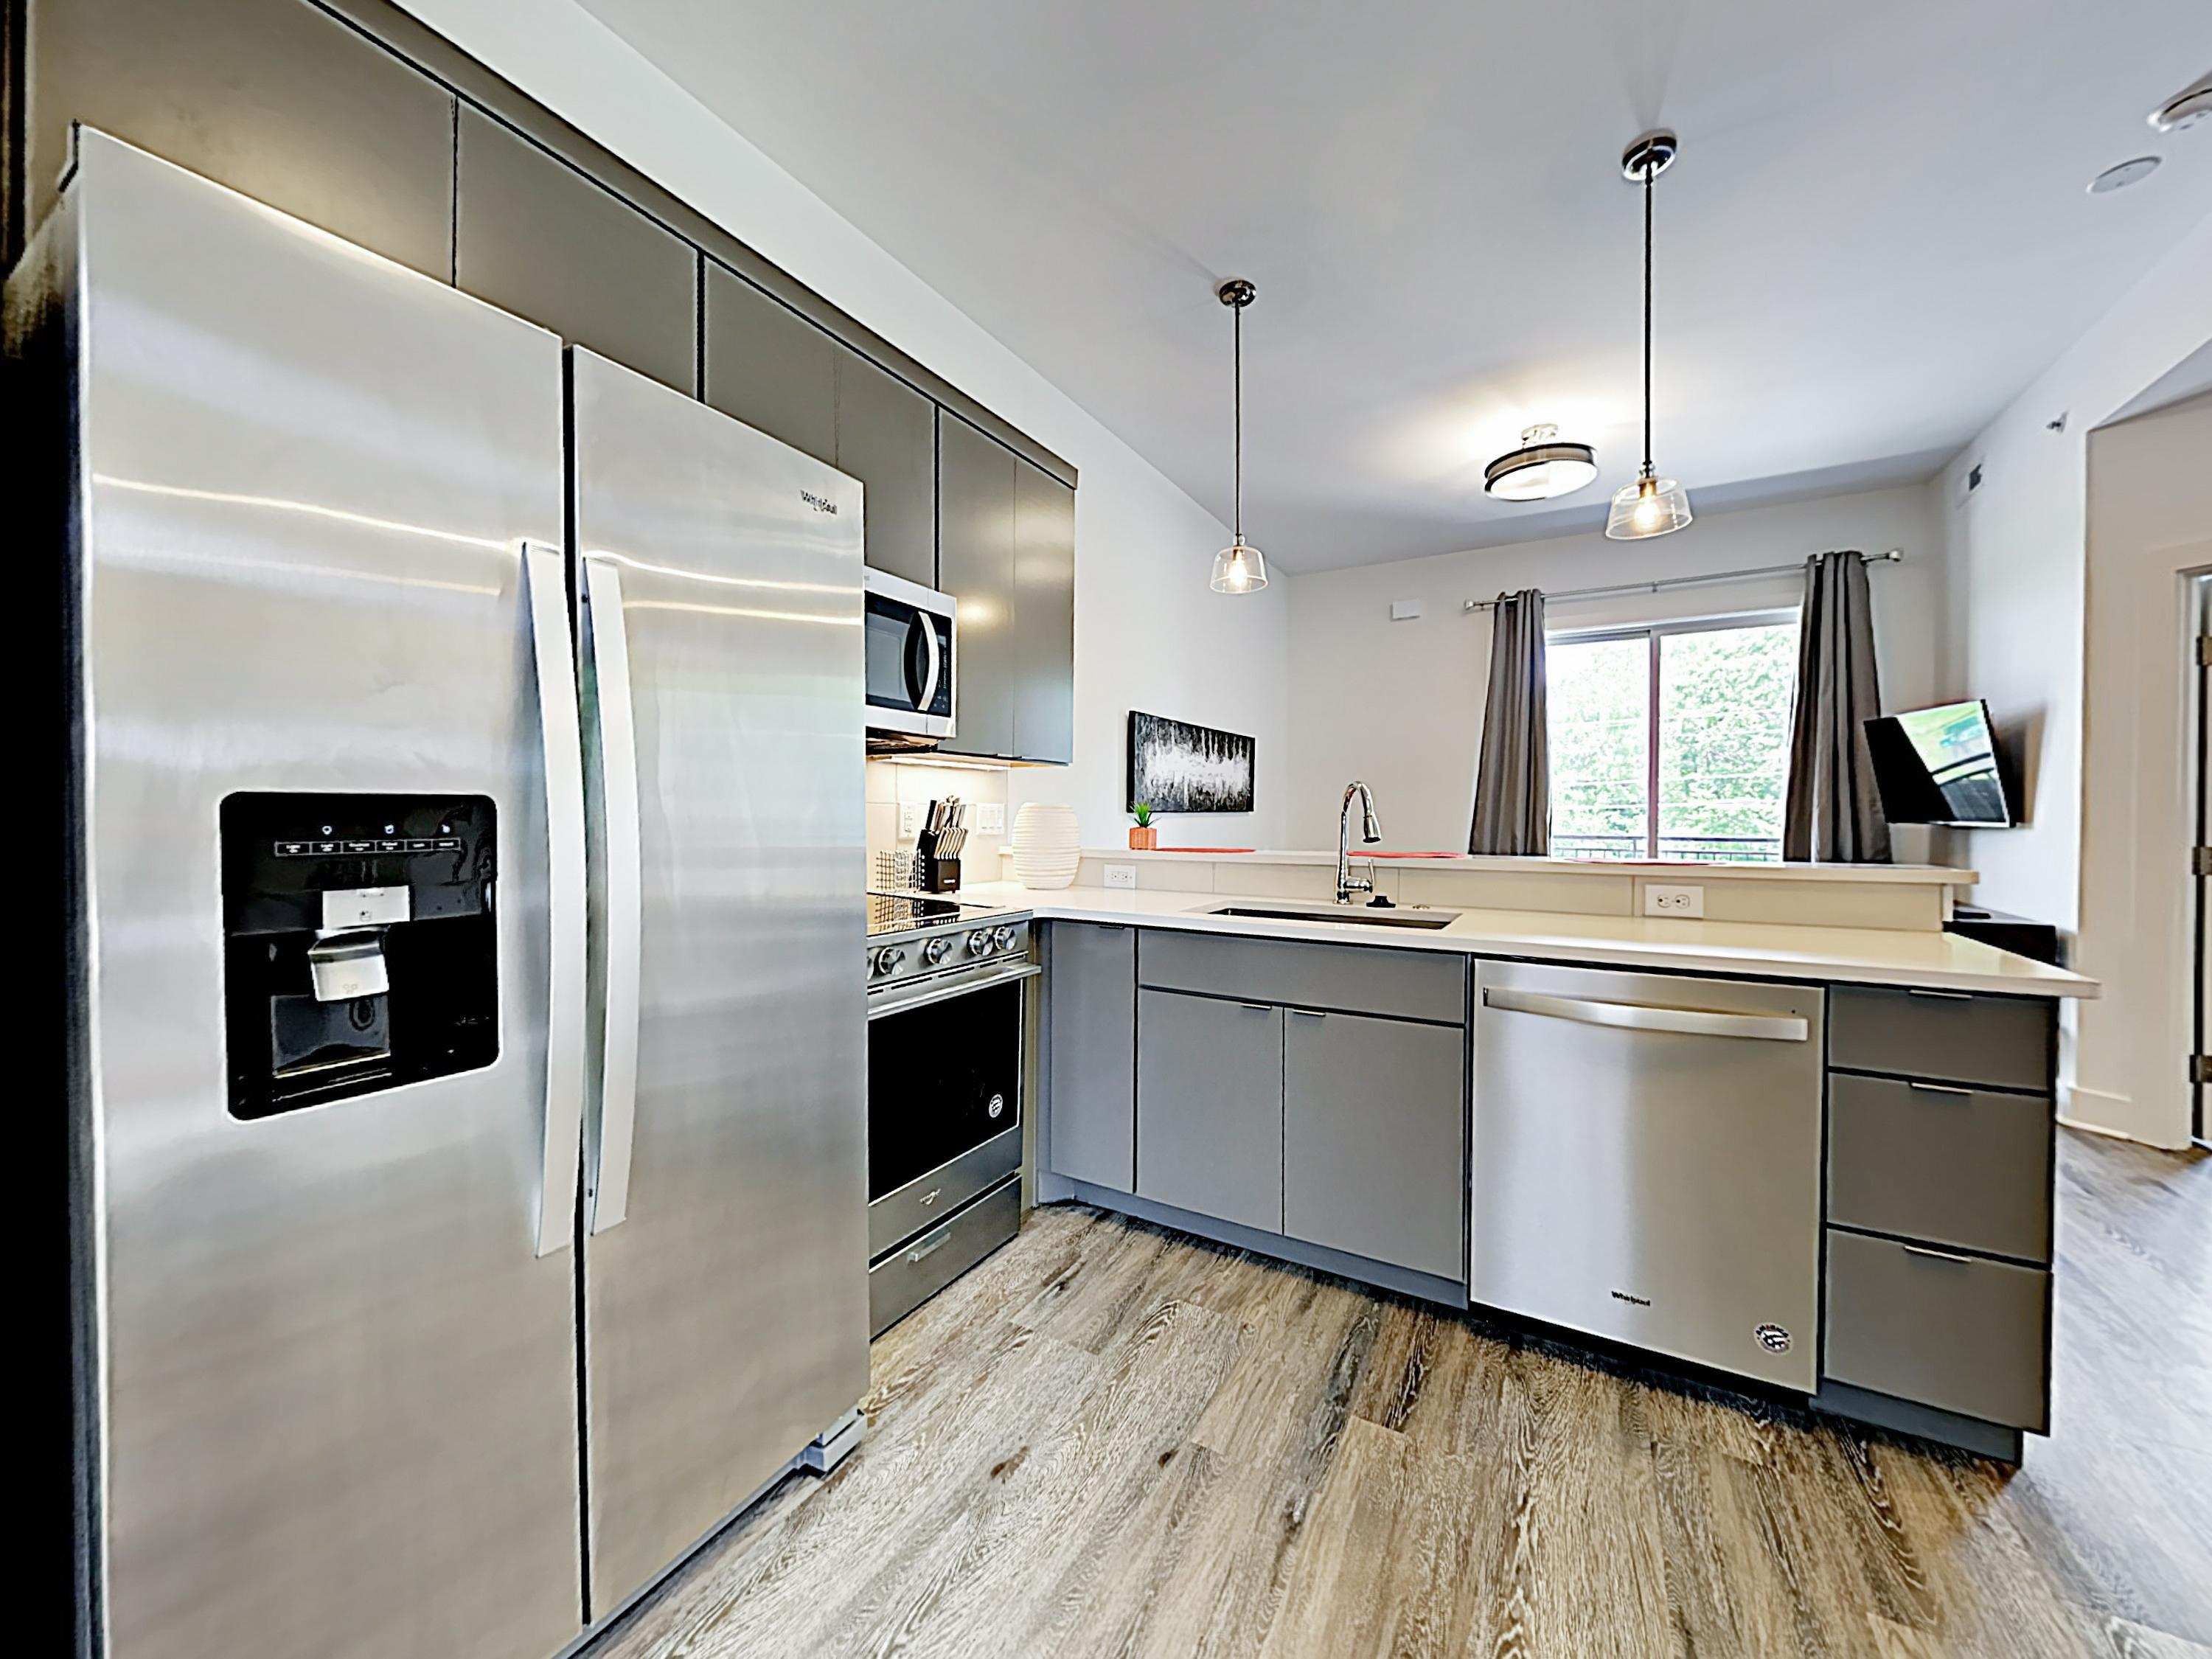 Sharpen your culinary skills in the gourmet kitchen, outfitted with stainless steel appliances and sleek granite countertops.